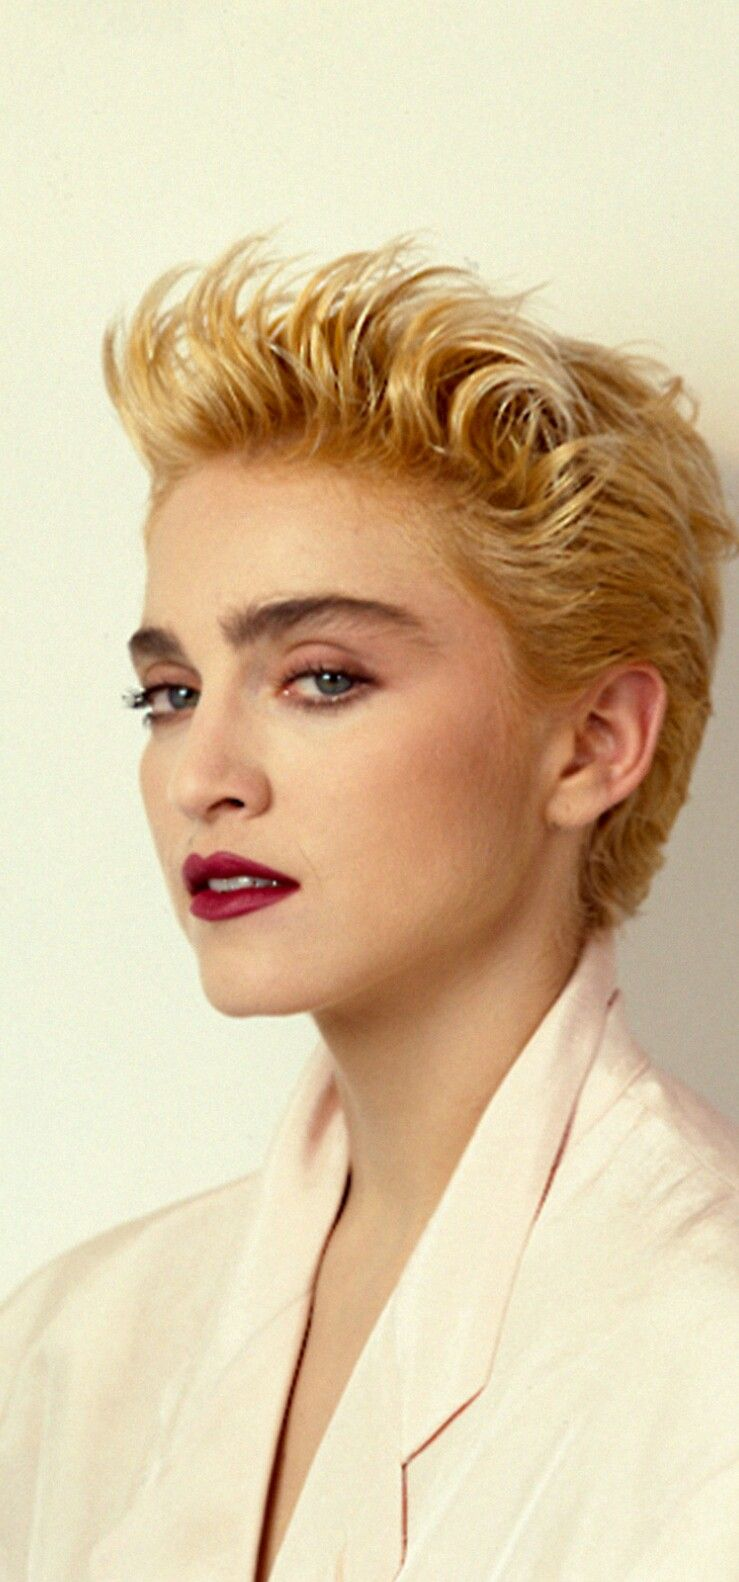 (I'm scared to cut my own hair this short, but she looks so cool. I'm willing to try a wig.)